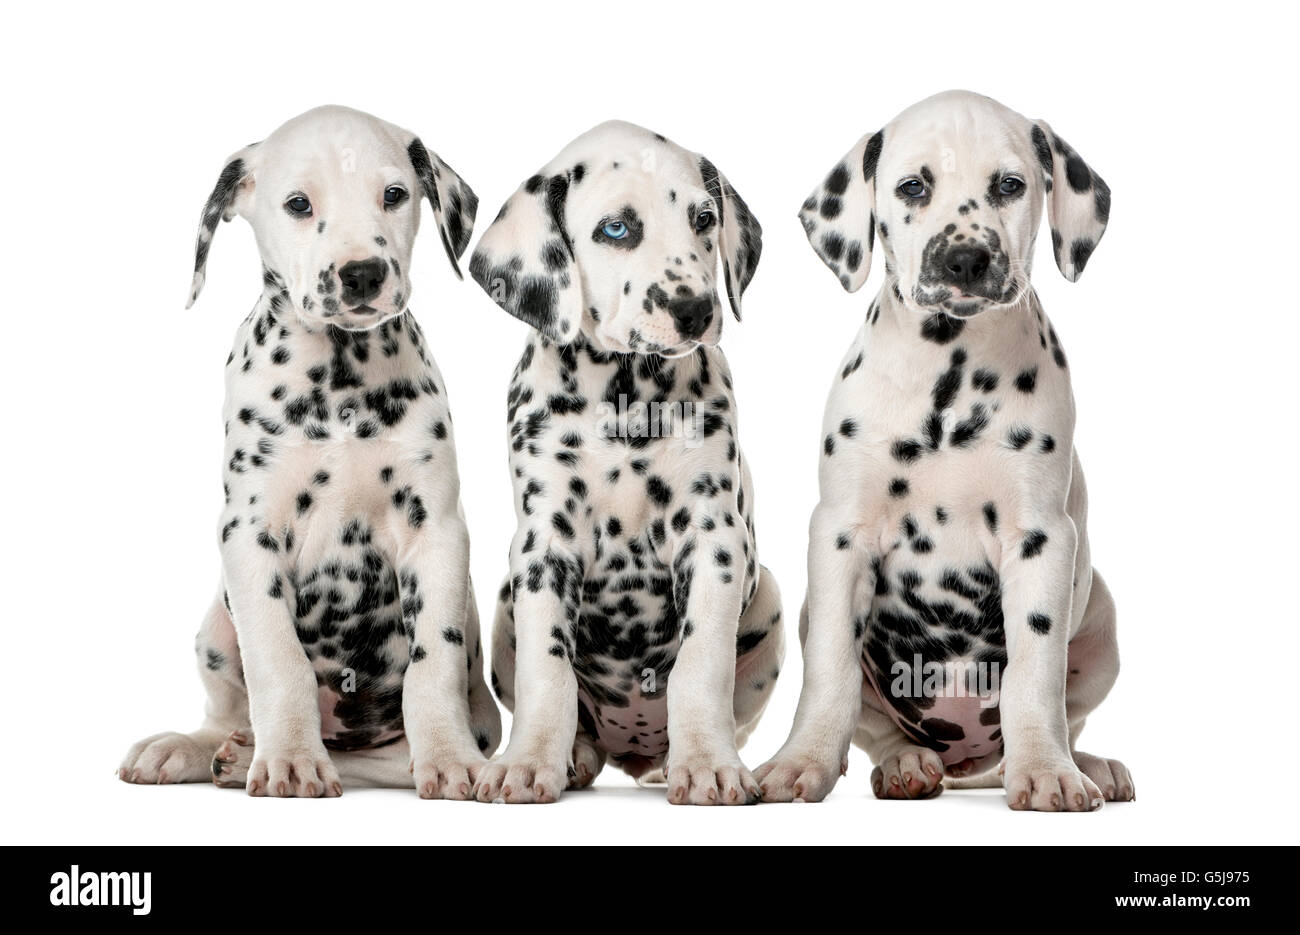 Three Dalmatian puppies sitting in front of a white background - Stock Image